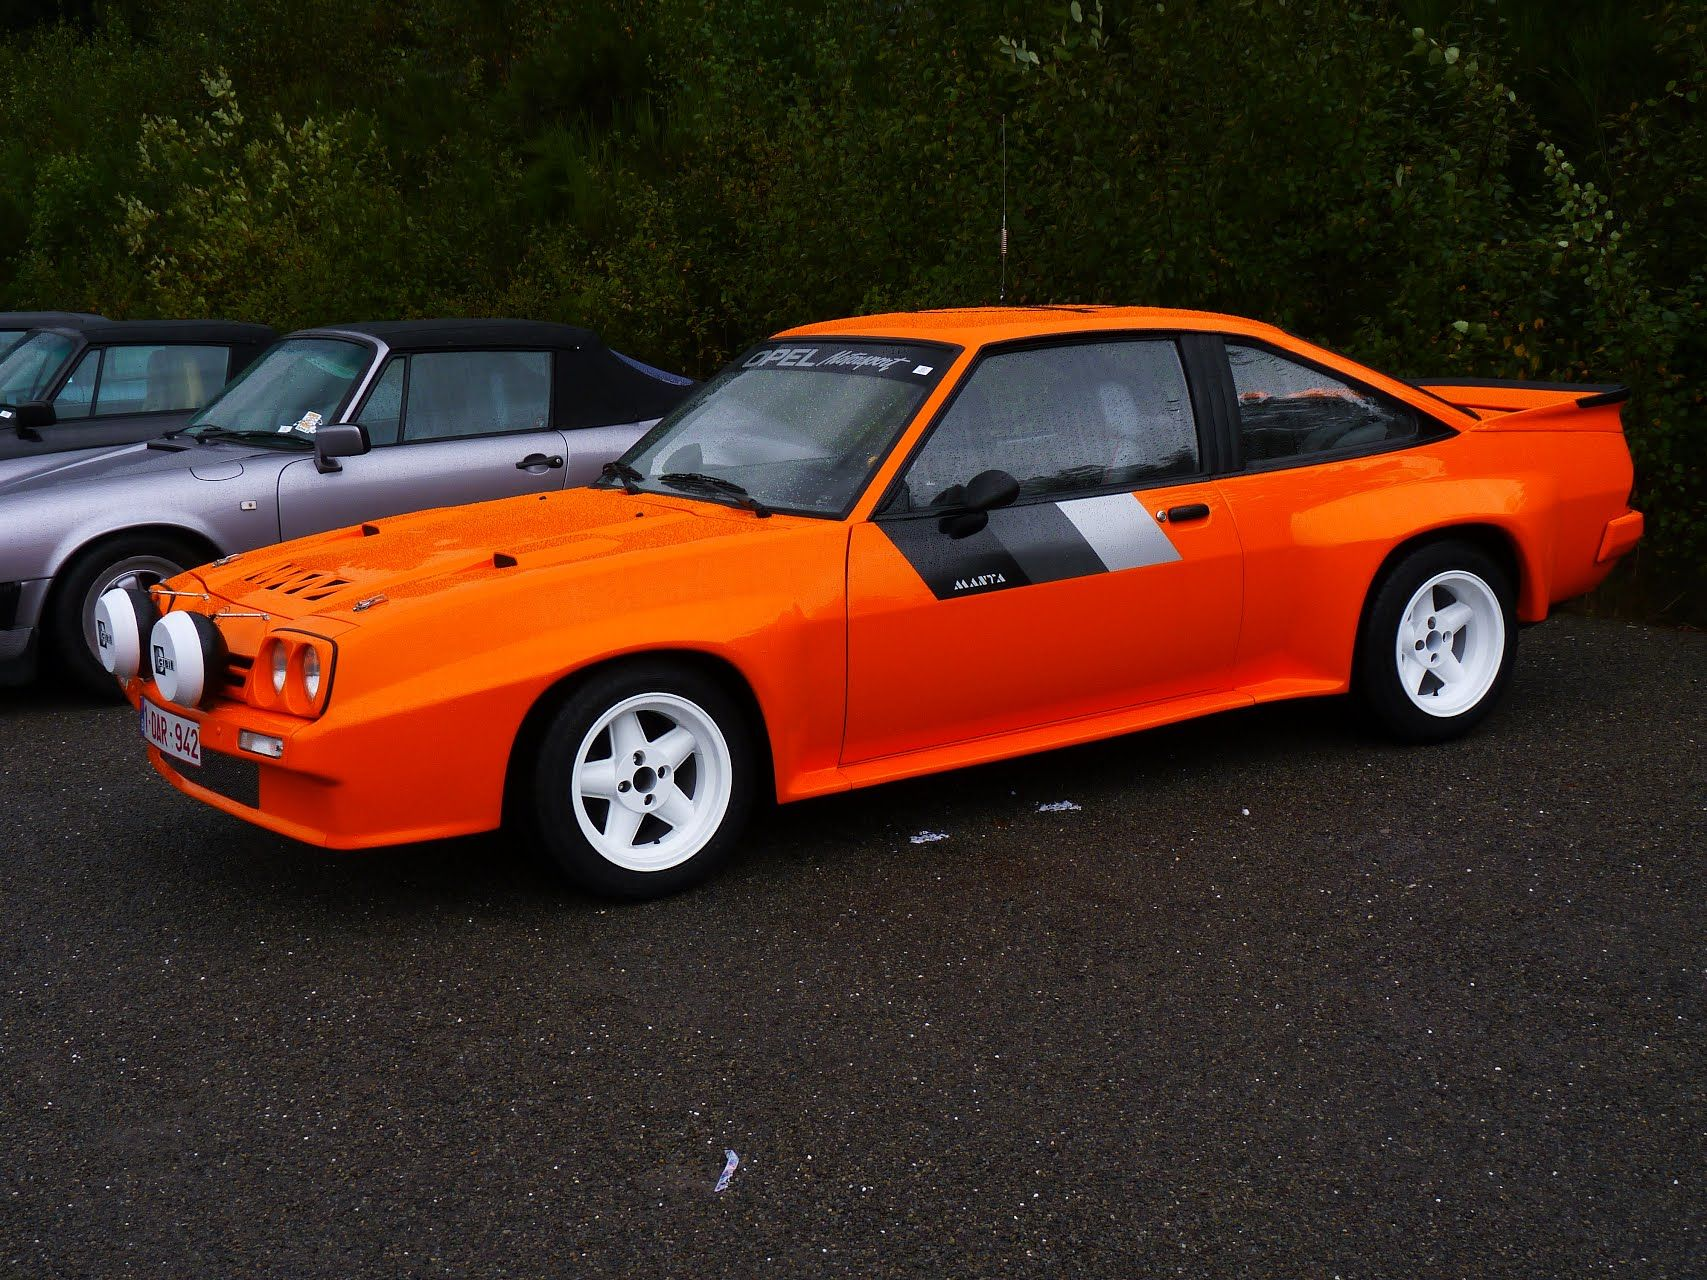 opel manta 400 opel pinterest opel manta cars and rally. Black Bedroom Furniture Sets. Home Design Ideas